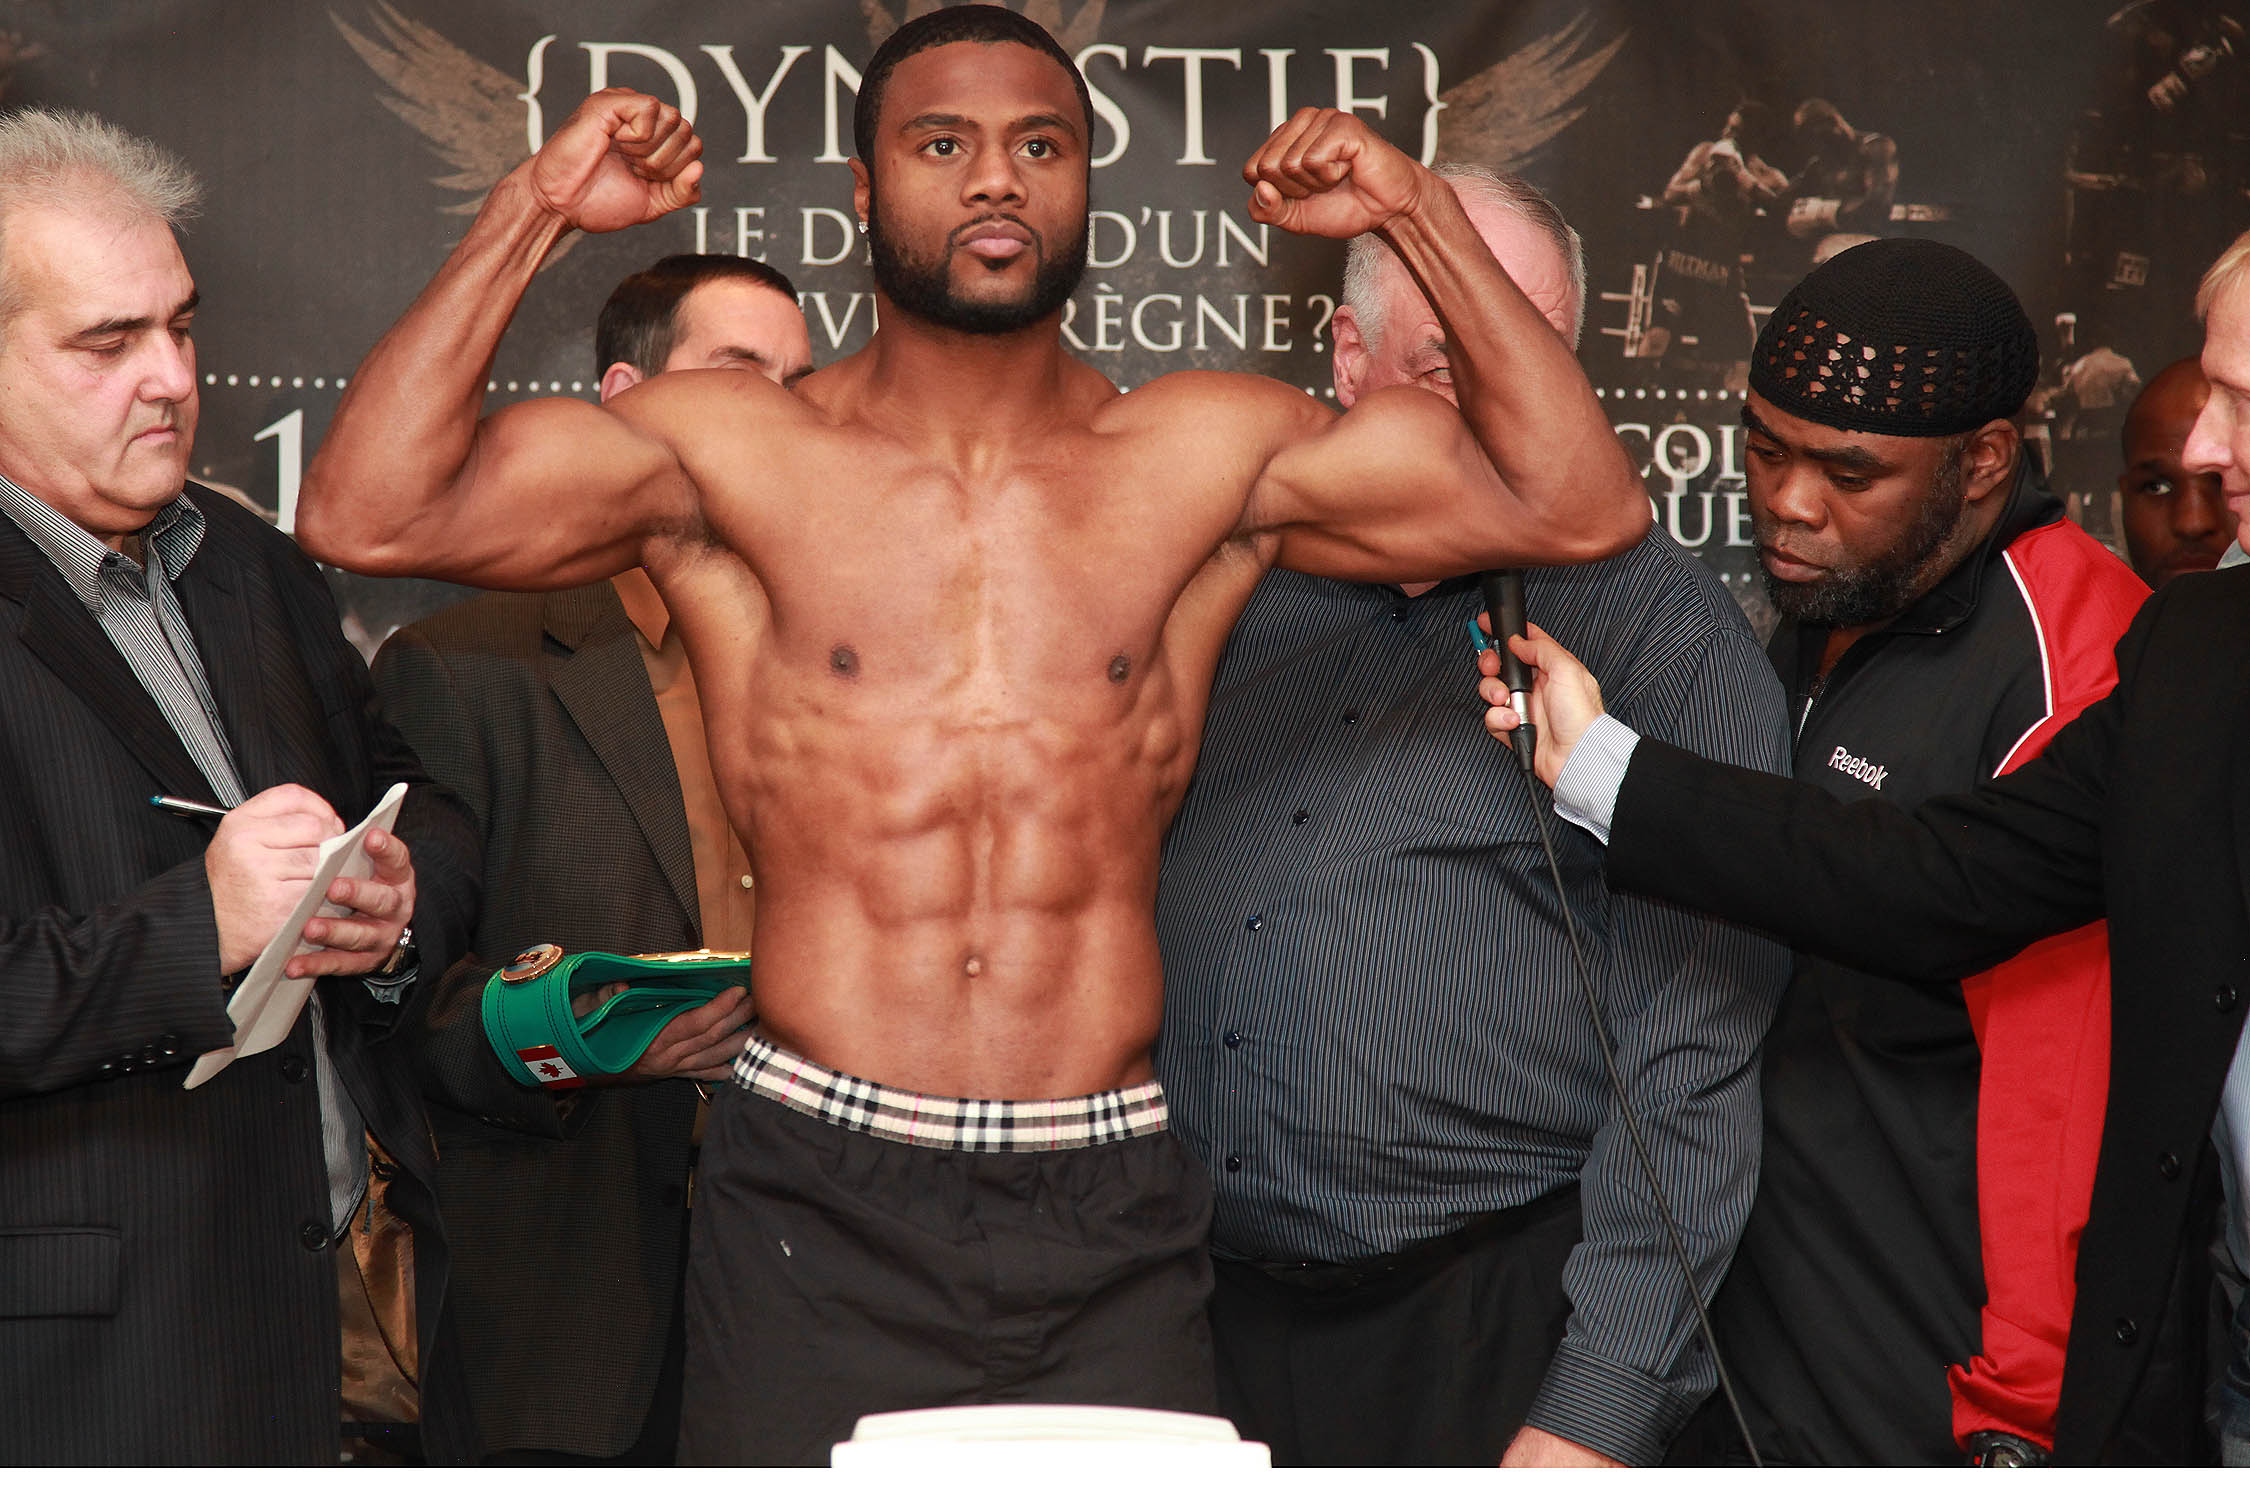 Jean Pascal, Sergey Kovalev - Former light heavyweight world champion Jean Pascal, has stated that he has fixed the flaws that cost him his first fight with WBA/WBO/IBF 175 champion Sergey Kovalev, and that his hook up with esteemed trainer Freddie Roach will be the difference maker in their Jan. 30 rematch.